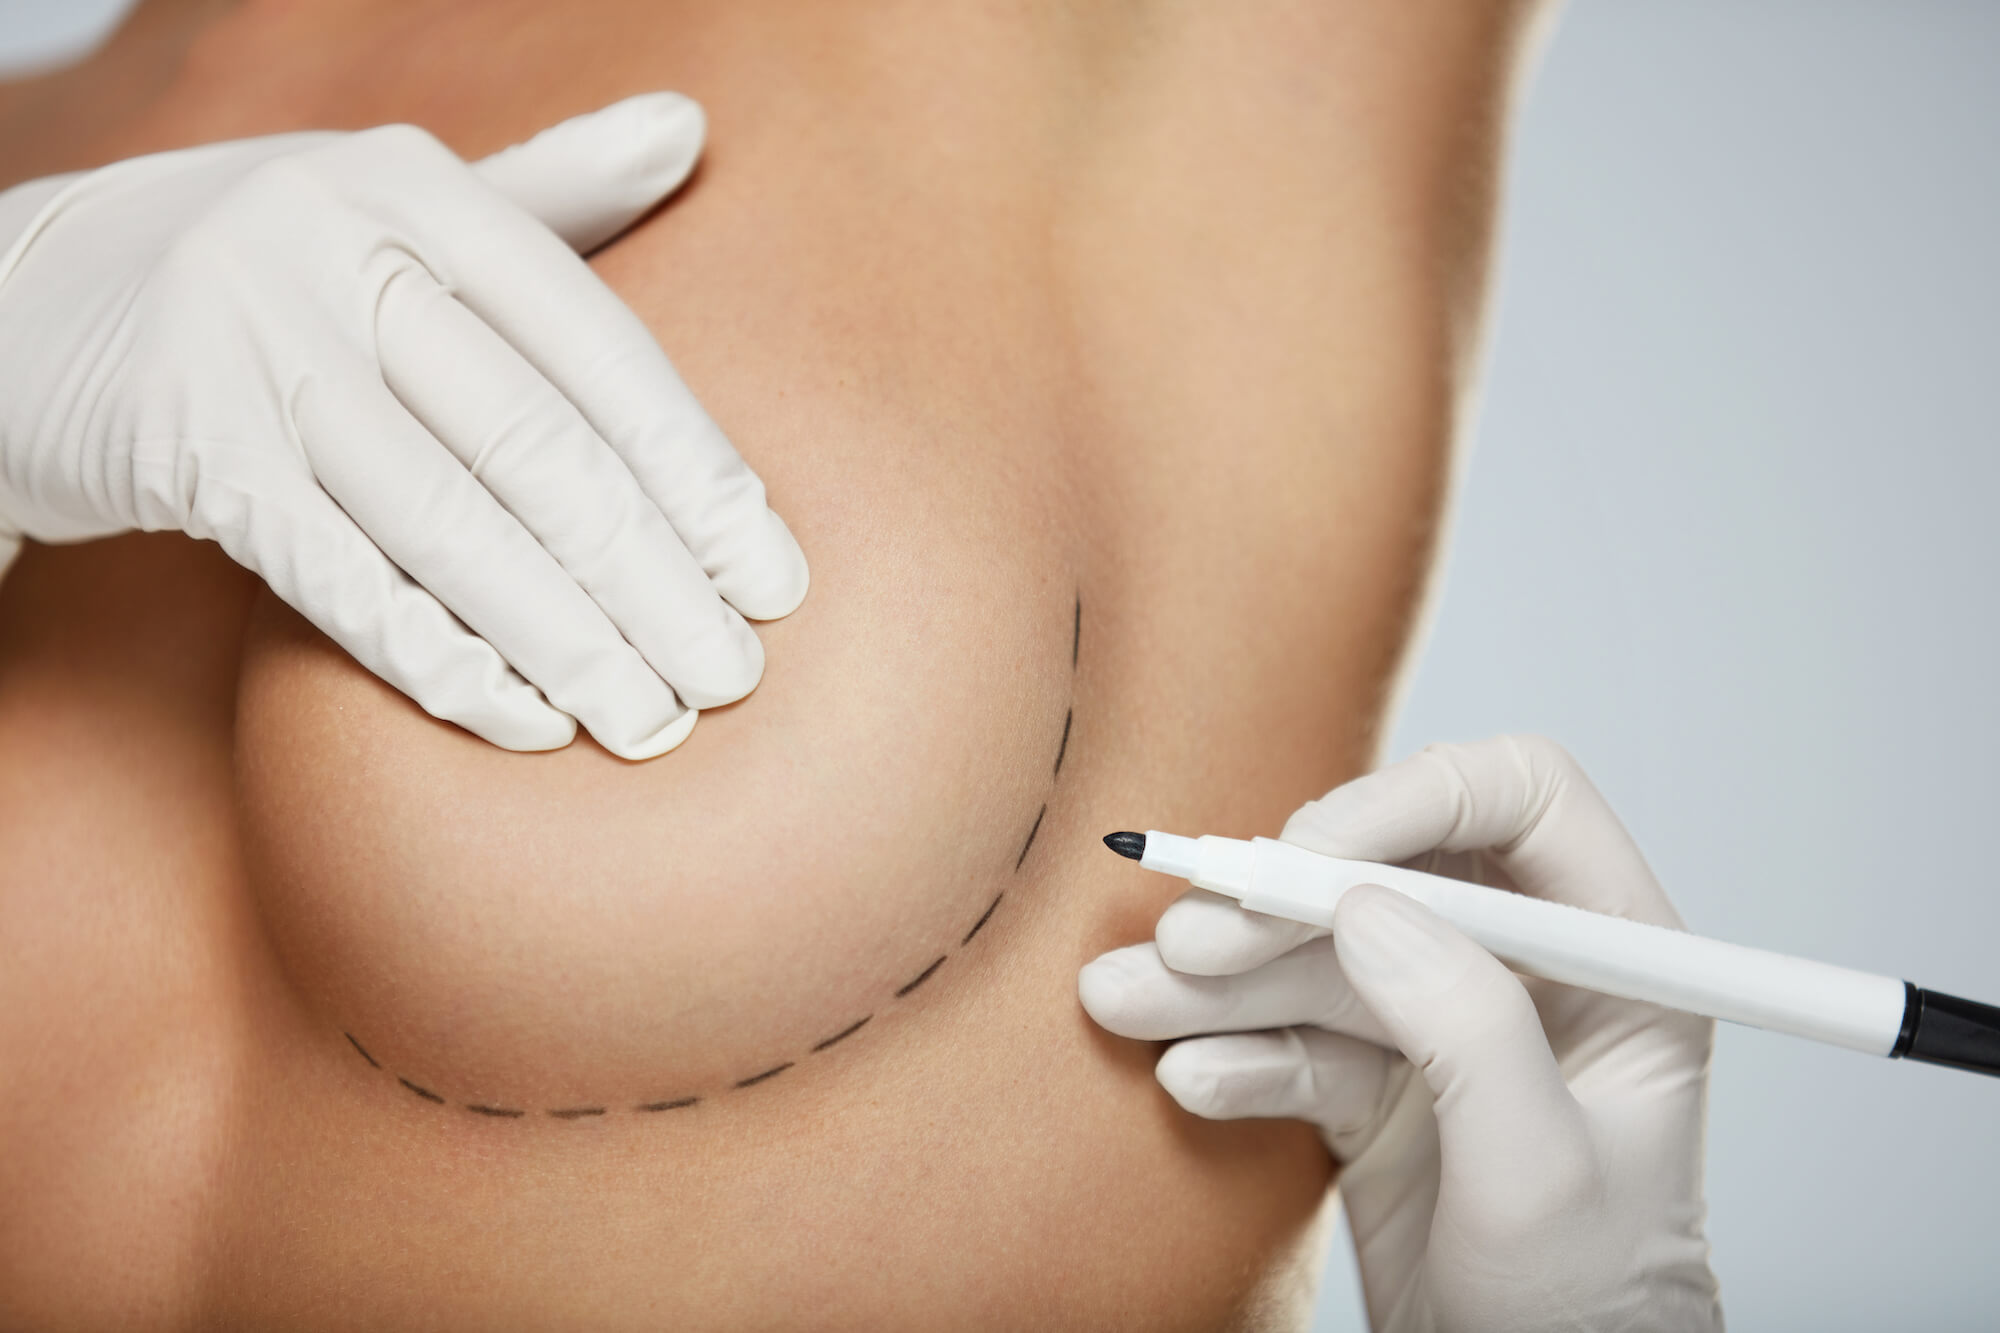 breast reshaping before and after photo gallery featured image